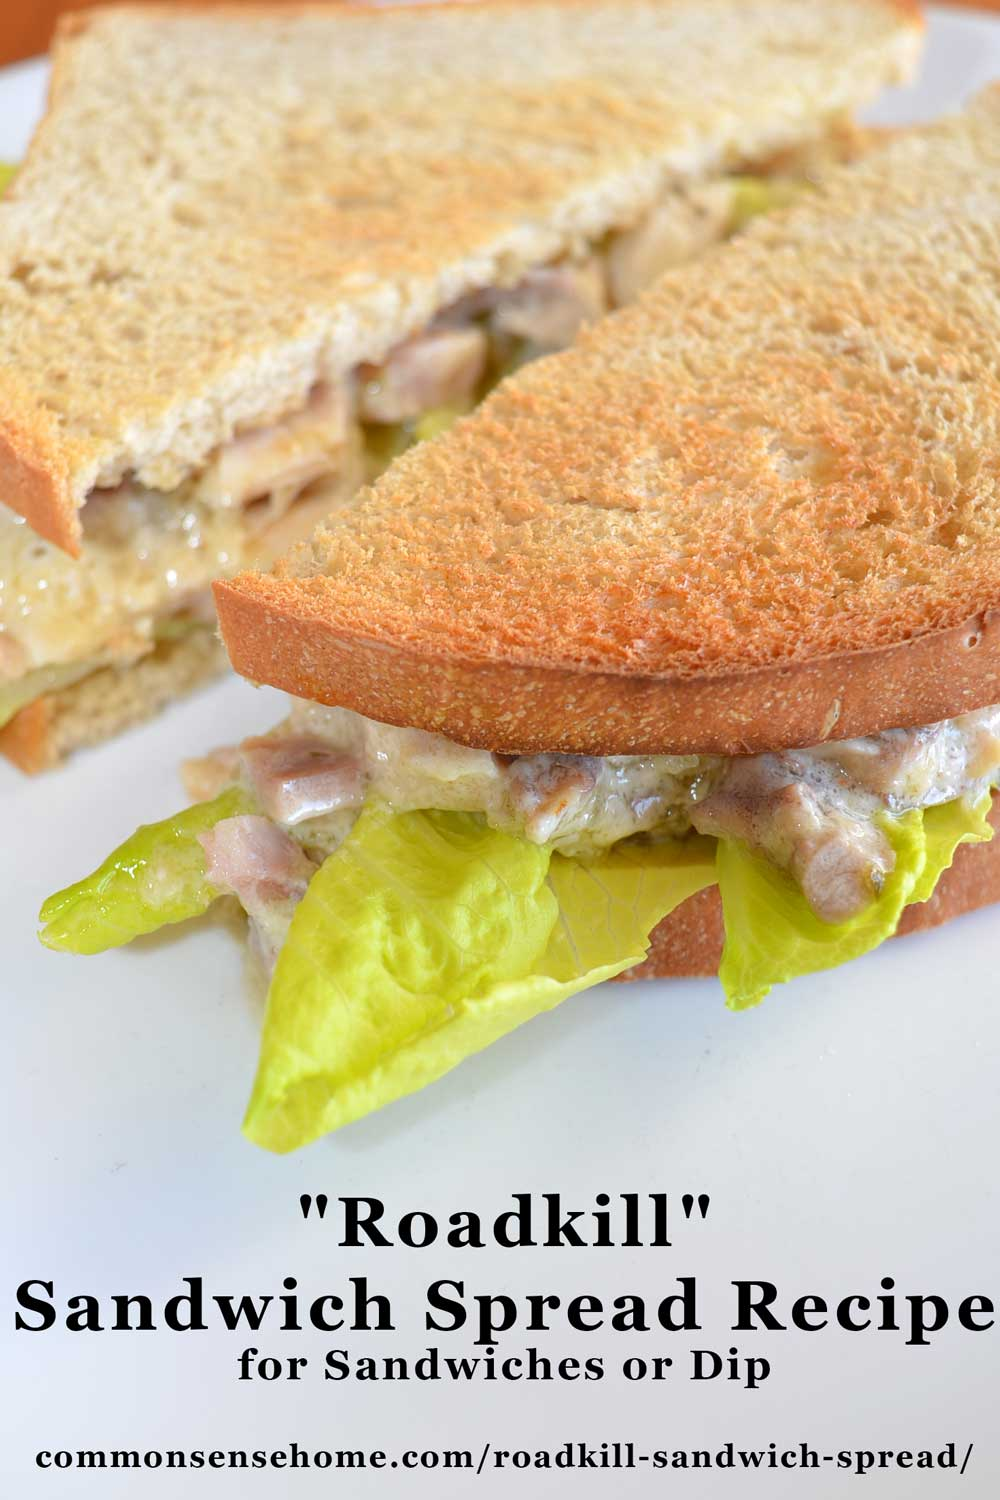 Sandwich made with homemade sandwich spread recipe with mayonnaise